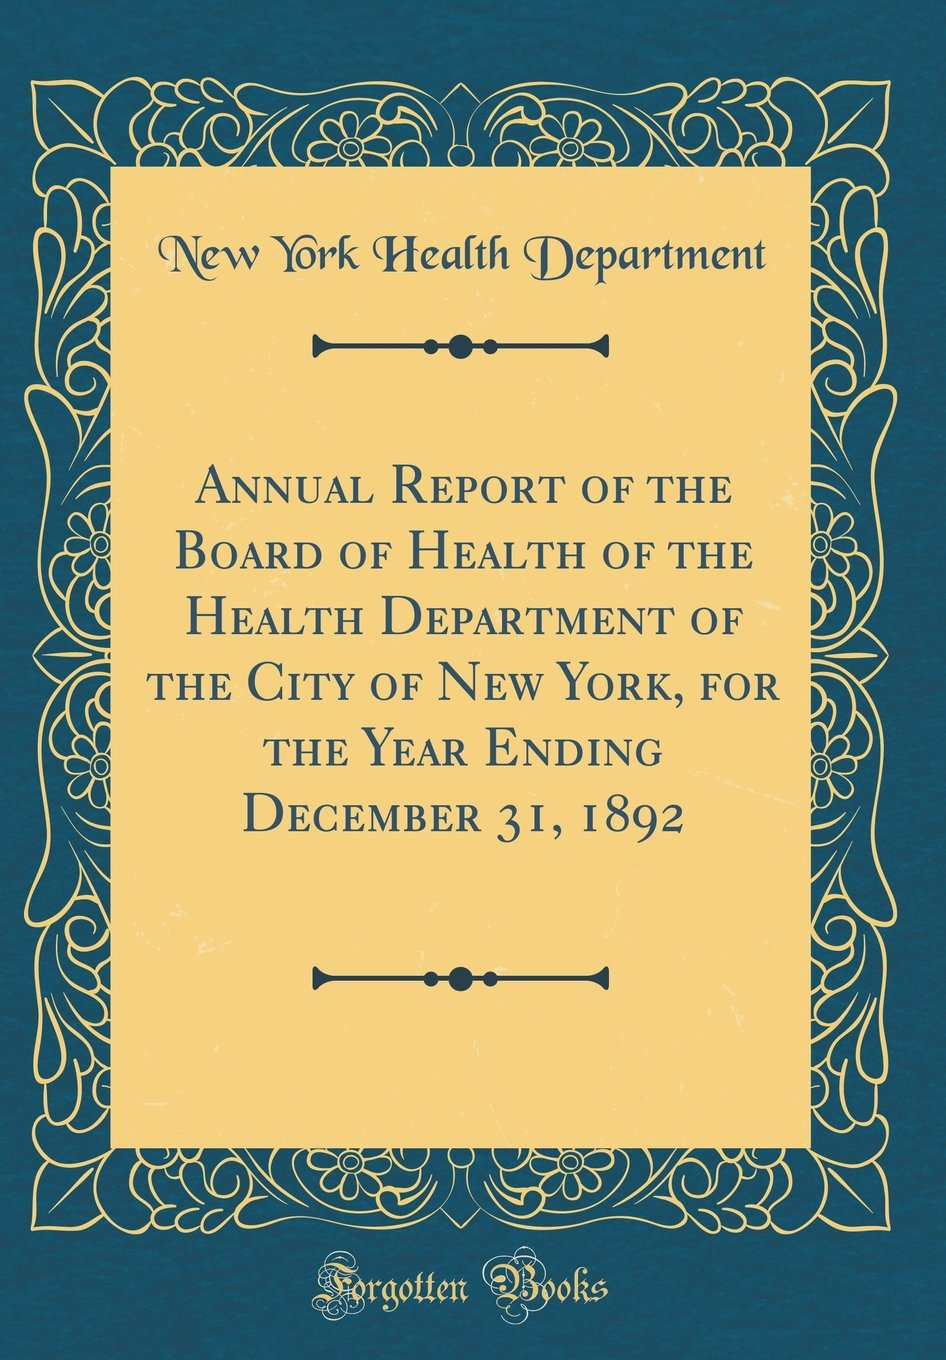 Download Annual Report of the Board of Health of the Health Department of the City of New York, for the Year Ending December 31, 1892 (Classic Reprint) ebook